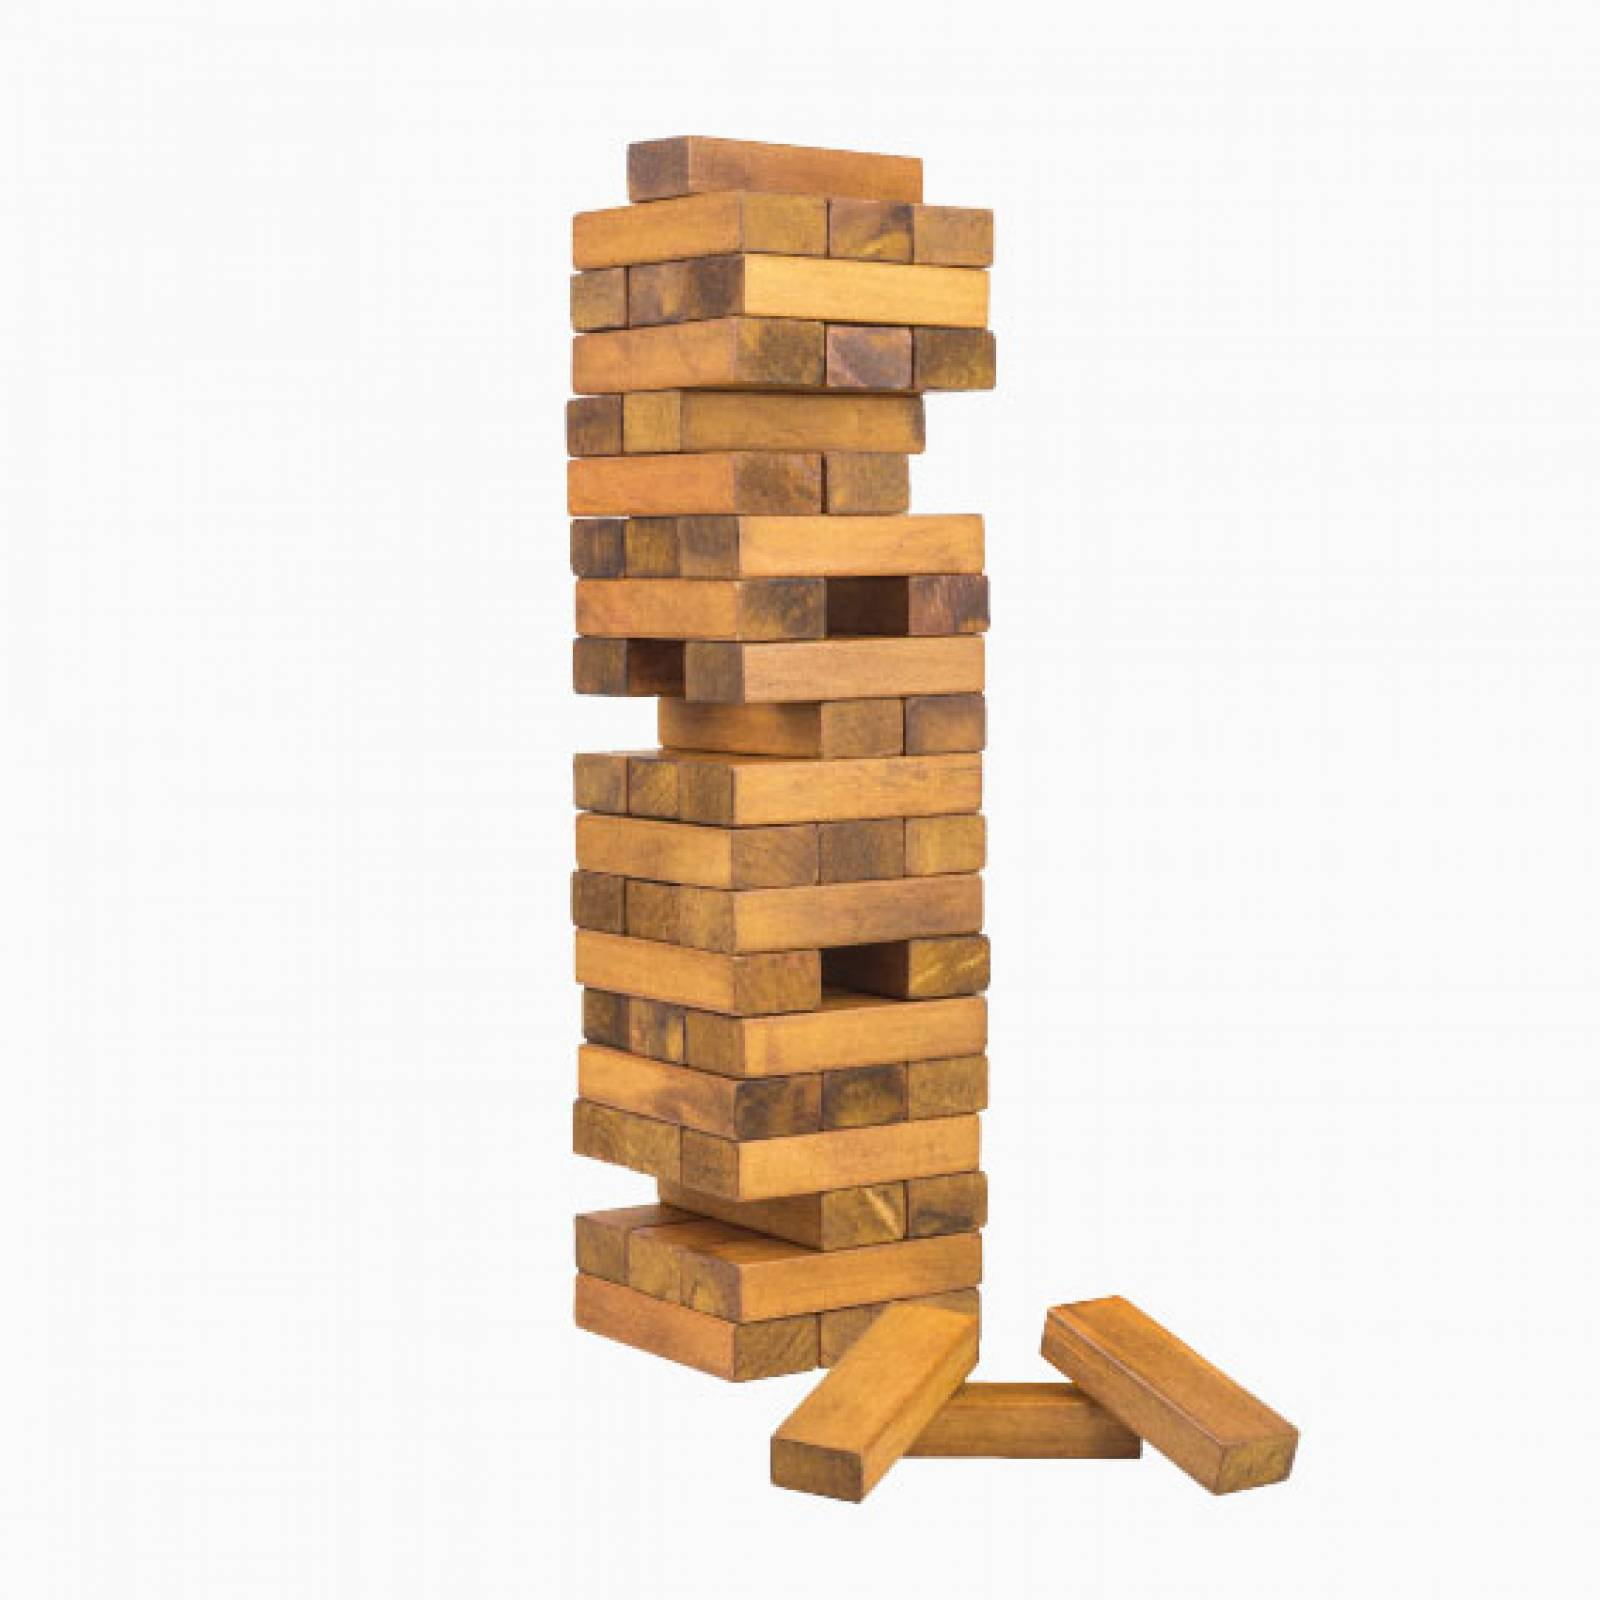 Toppling Tower - Handcrafted Wooden Game Set thumbnails